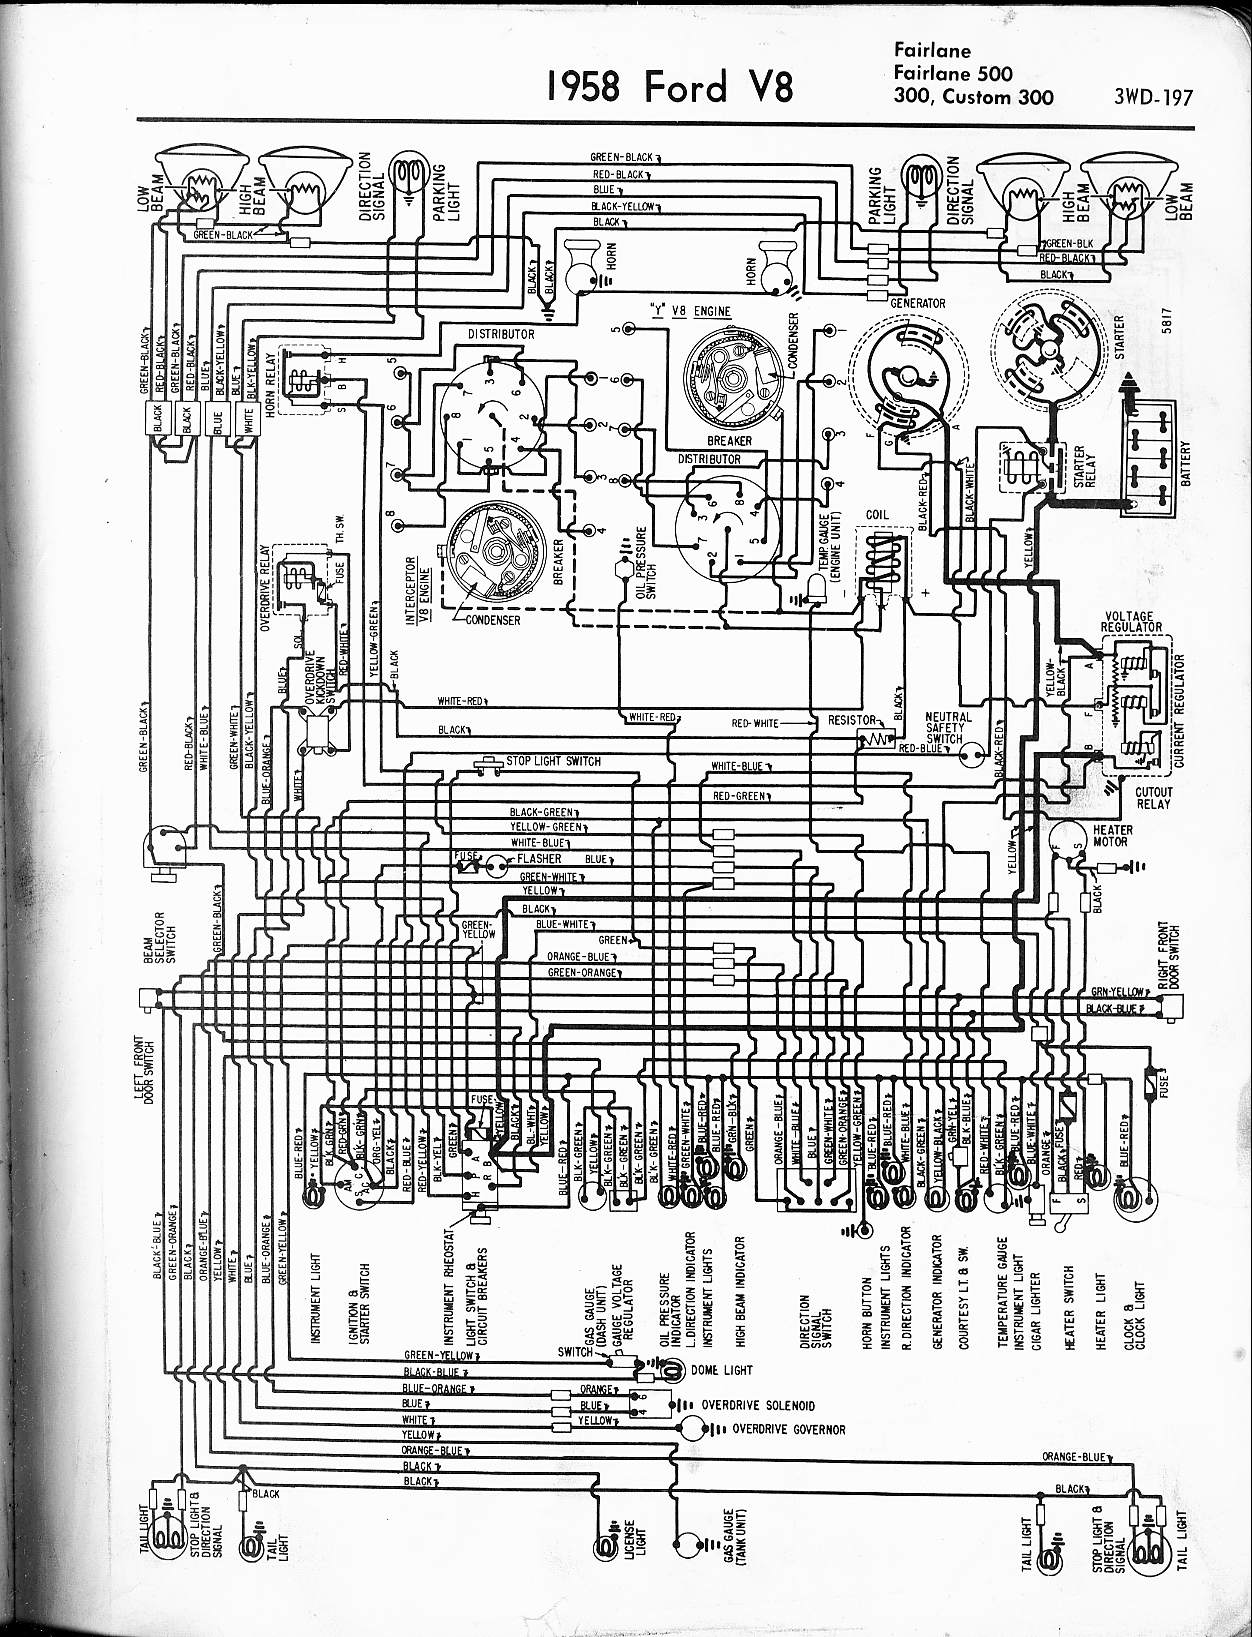 MWire5765 197 57 65 ford wiring diagrams free ford wiring diagrams online at bayanpartner.co